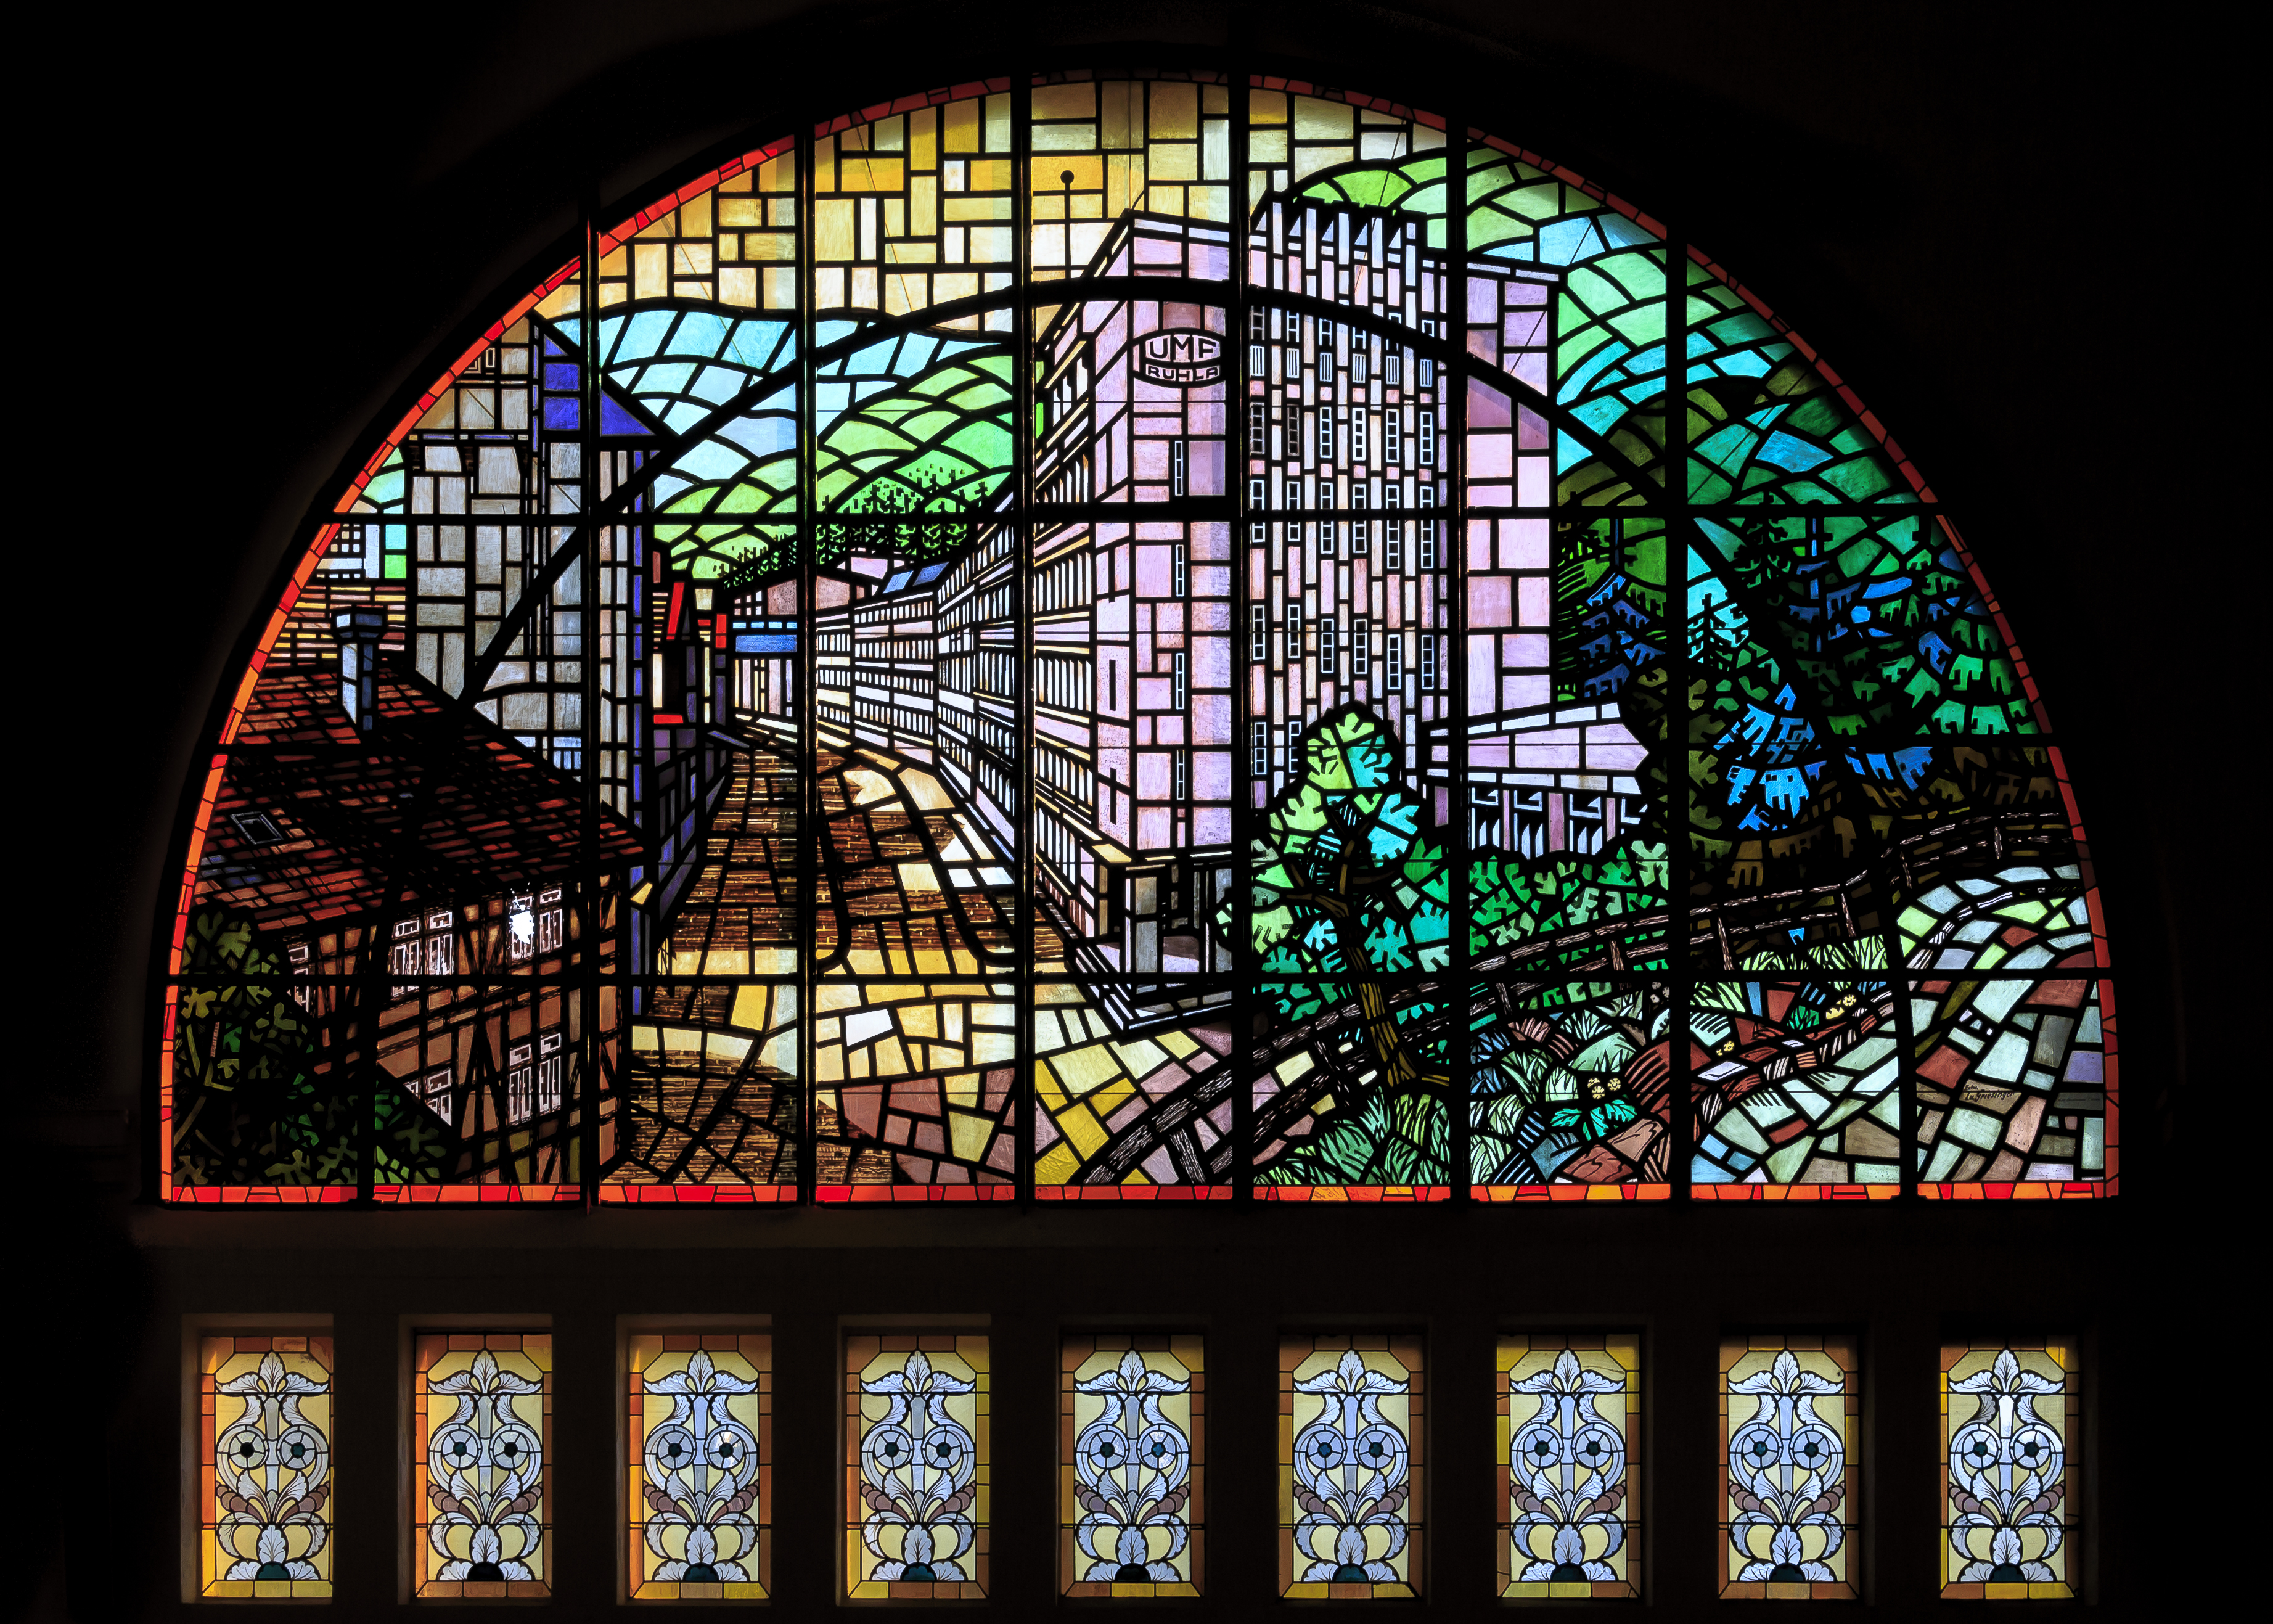 Eisenach Germany Stained-glass-windows-in-Railway-station-02